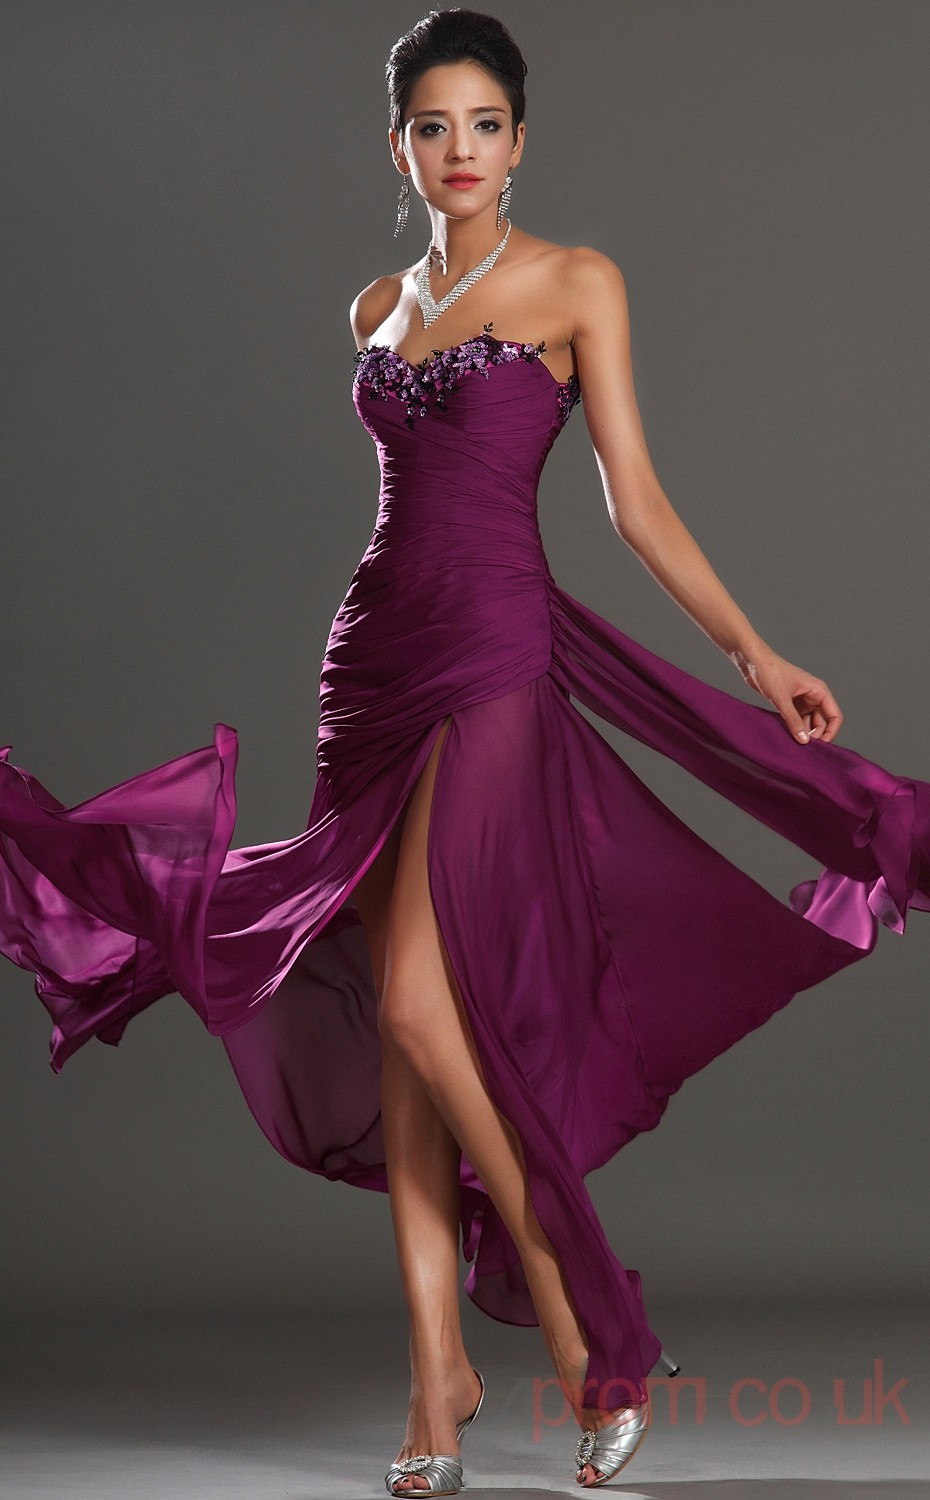 0746bc93715 UK Prom Dresses   Bridesmaid Dresses Online Store with UK Free Delivery.  All Rights Reserved.